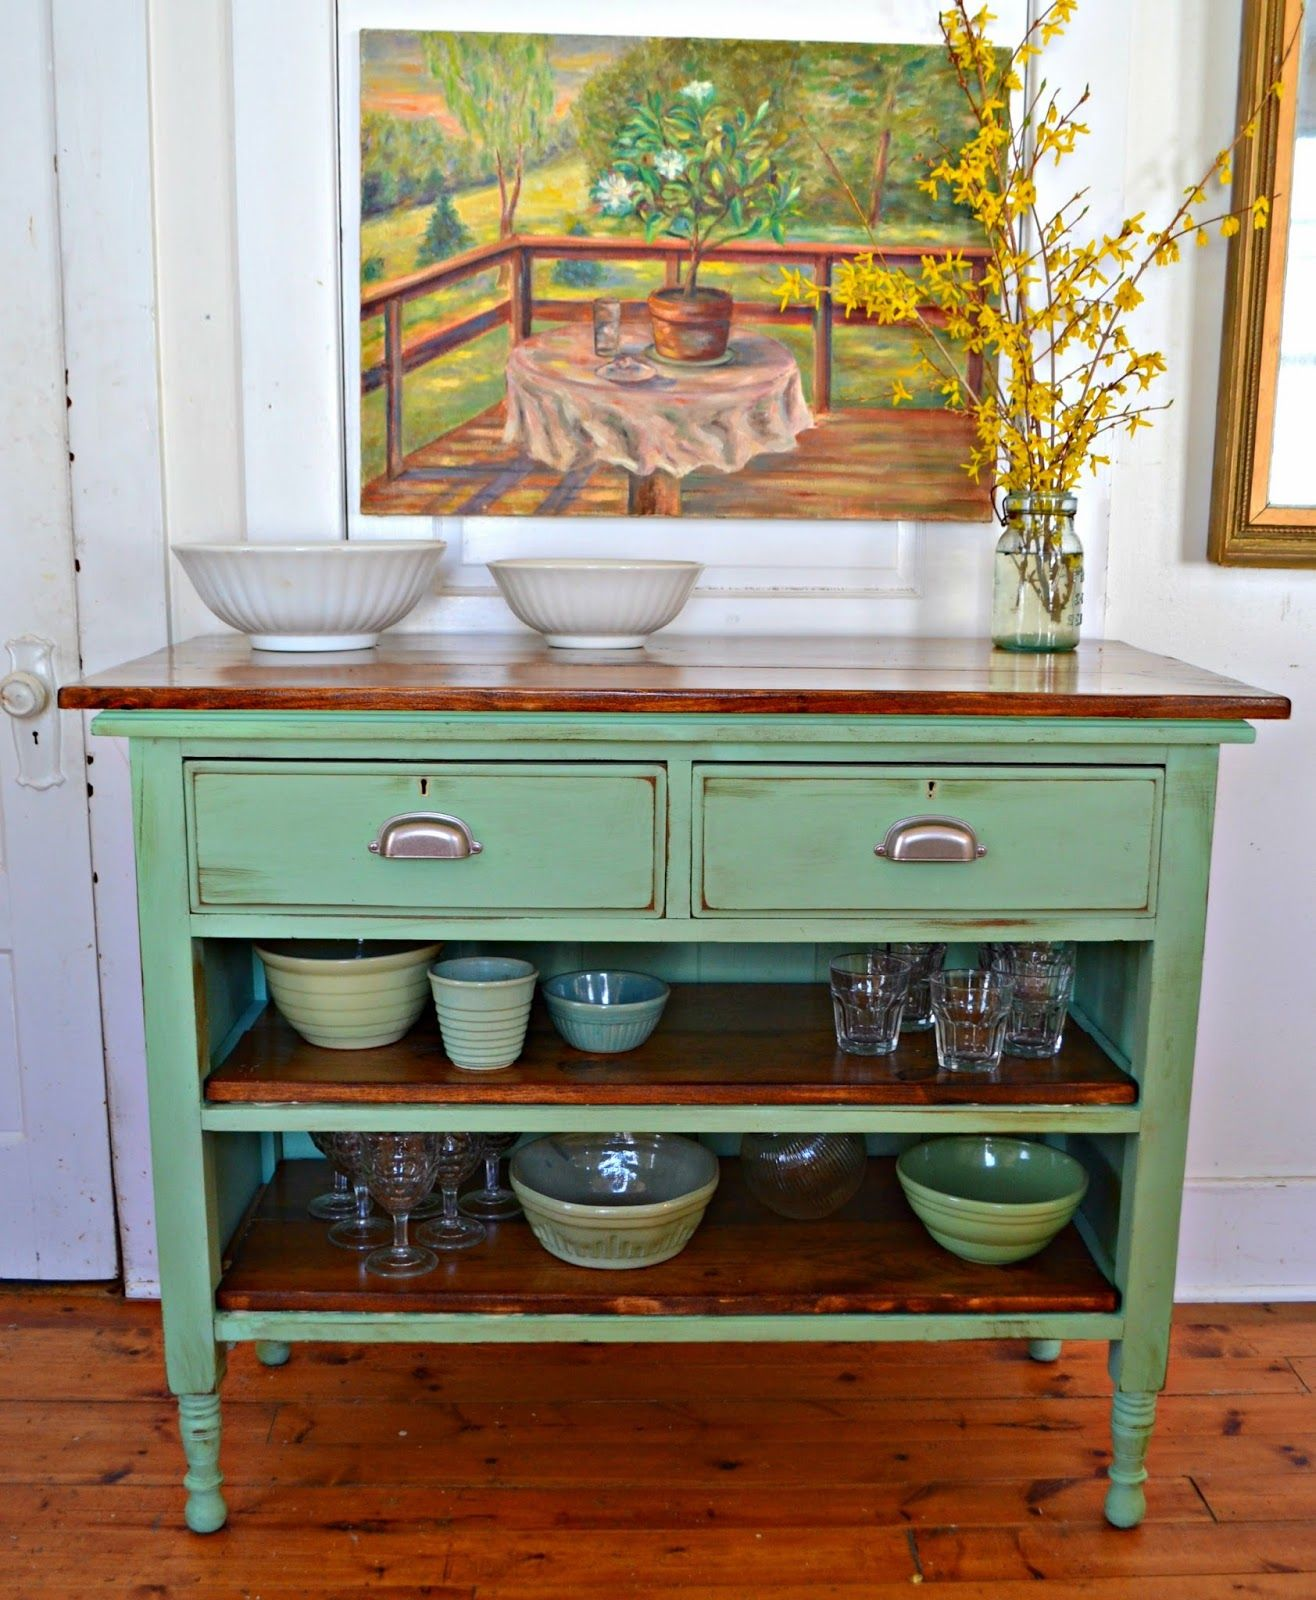 Made By Megg Kitchen Paint: Heir And Space: Antique Dresser Turned Kitchen Island